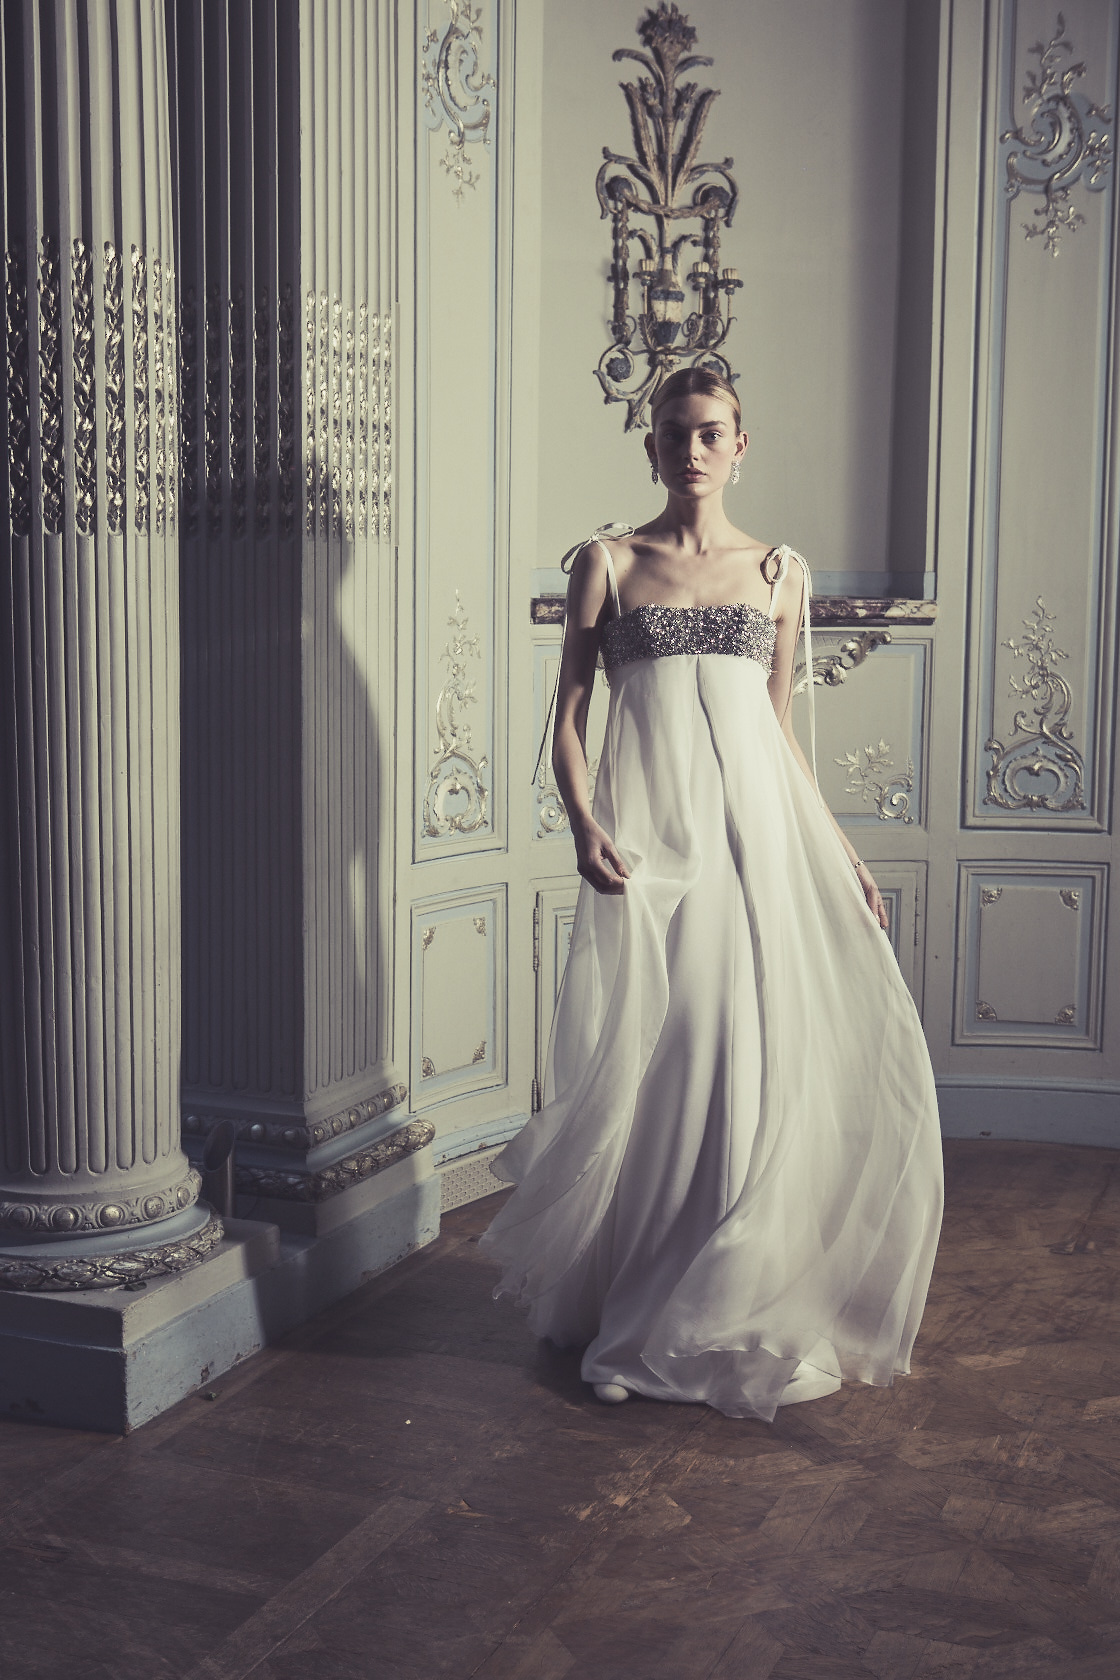 COUTURE WEDDING DRESS: CLAUDETTE ROCKS